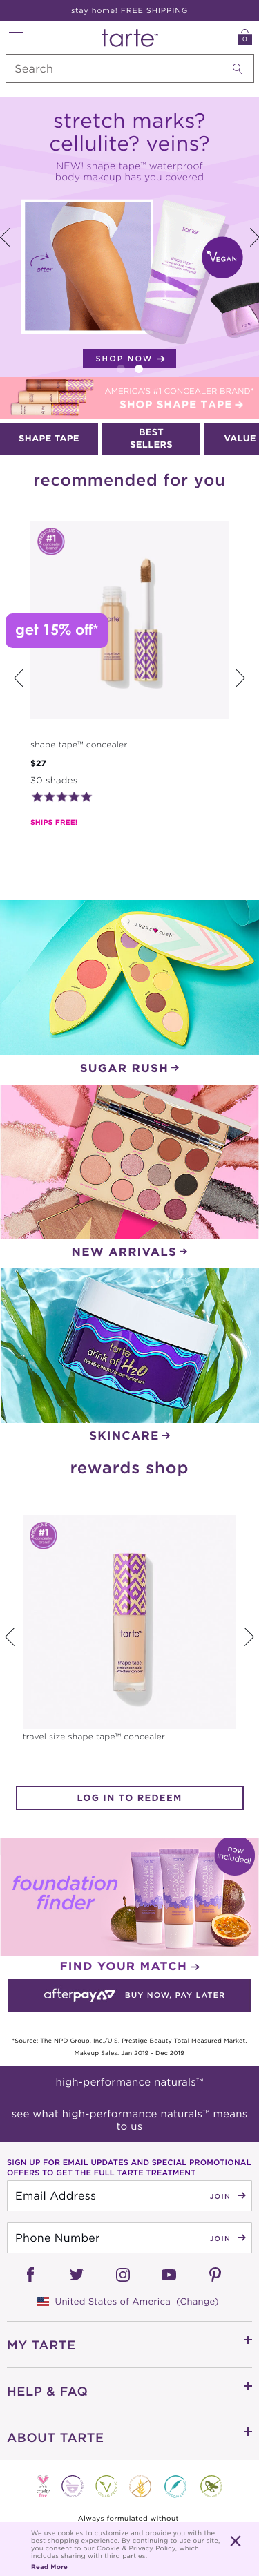 tarte cosmetics Coupon